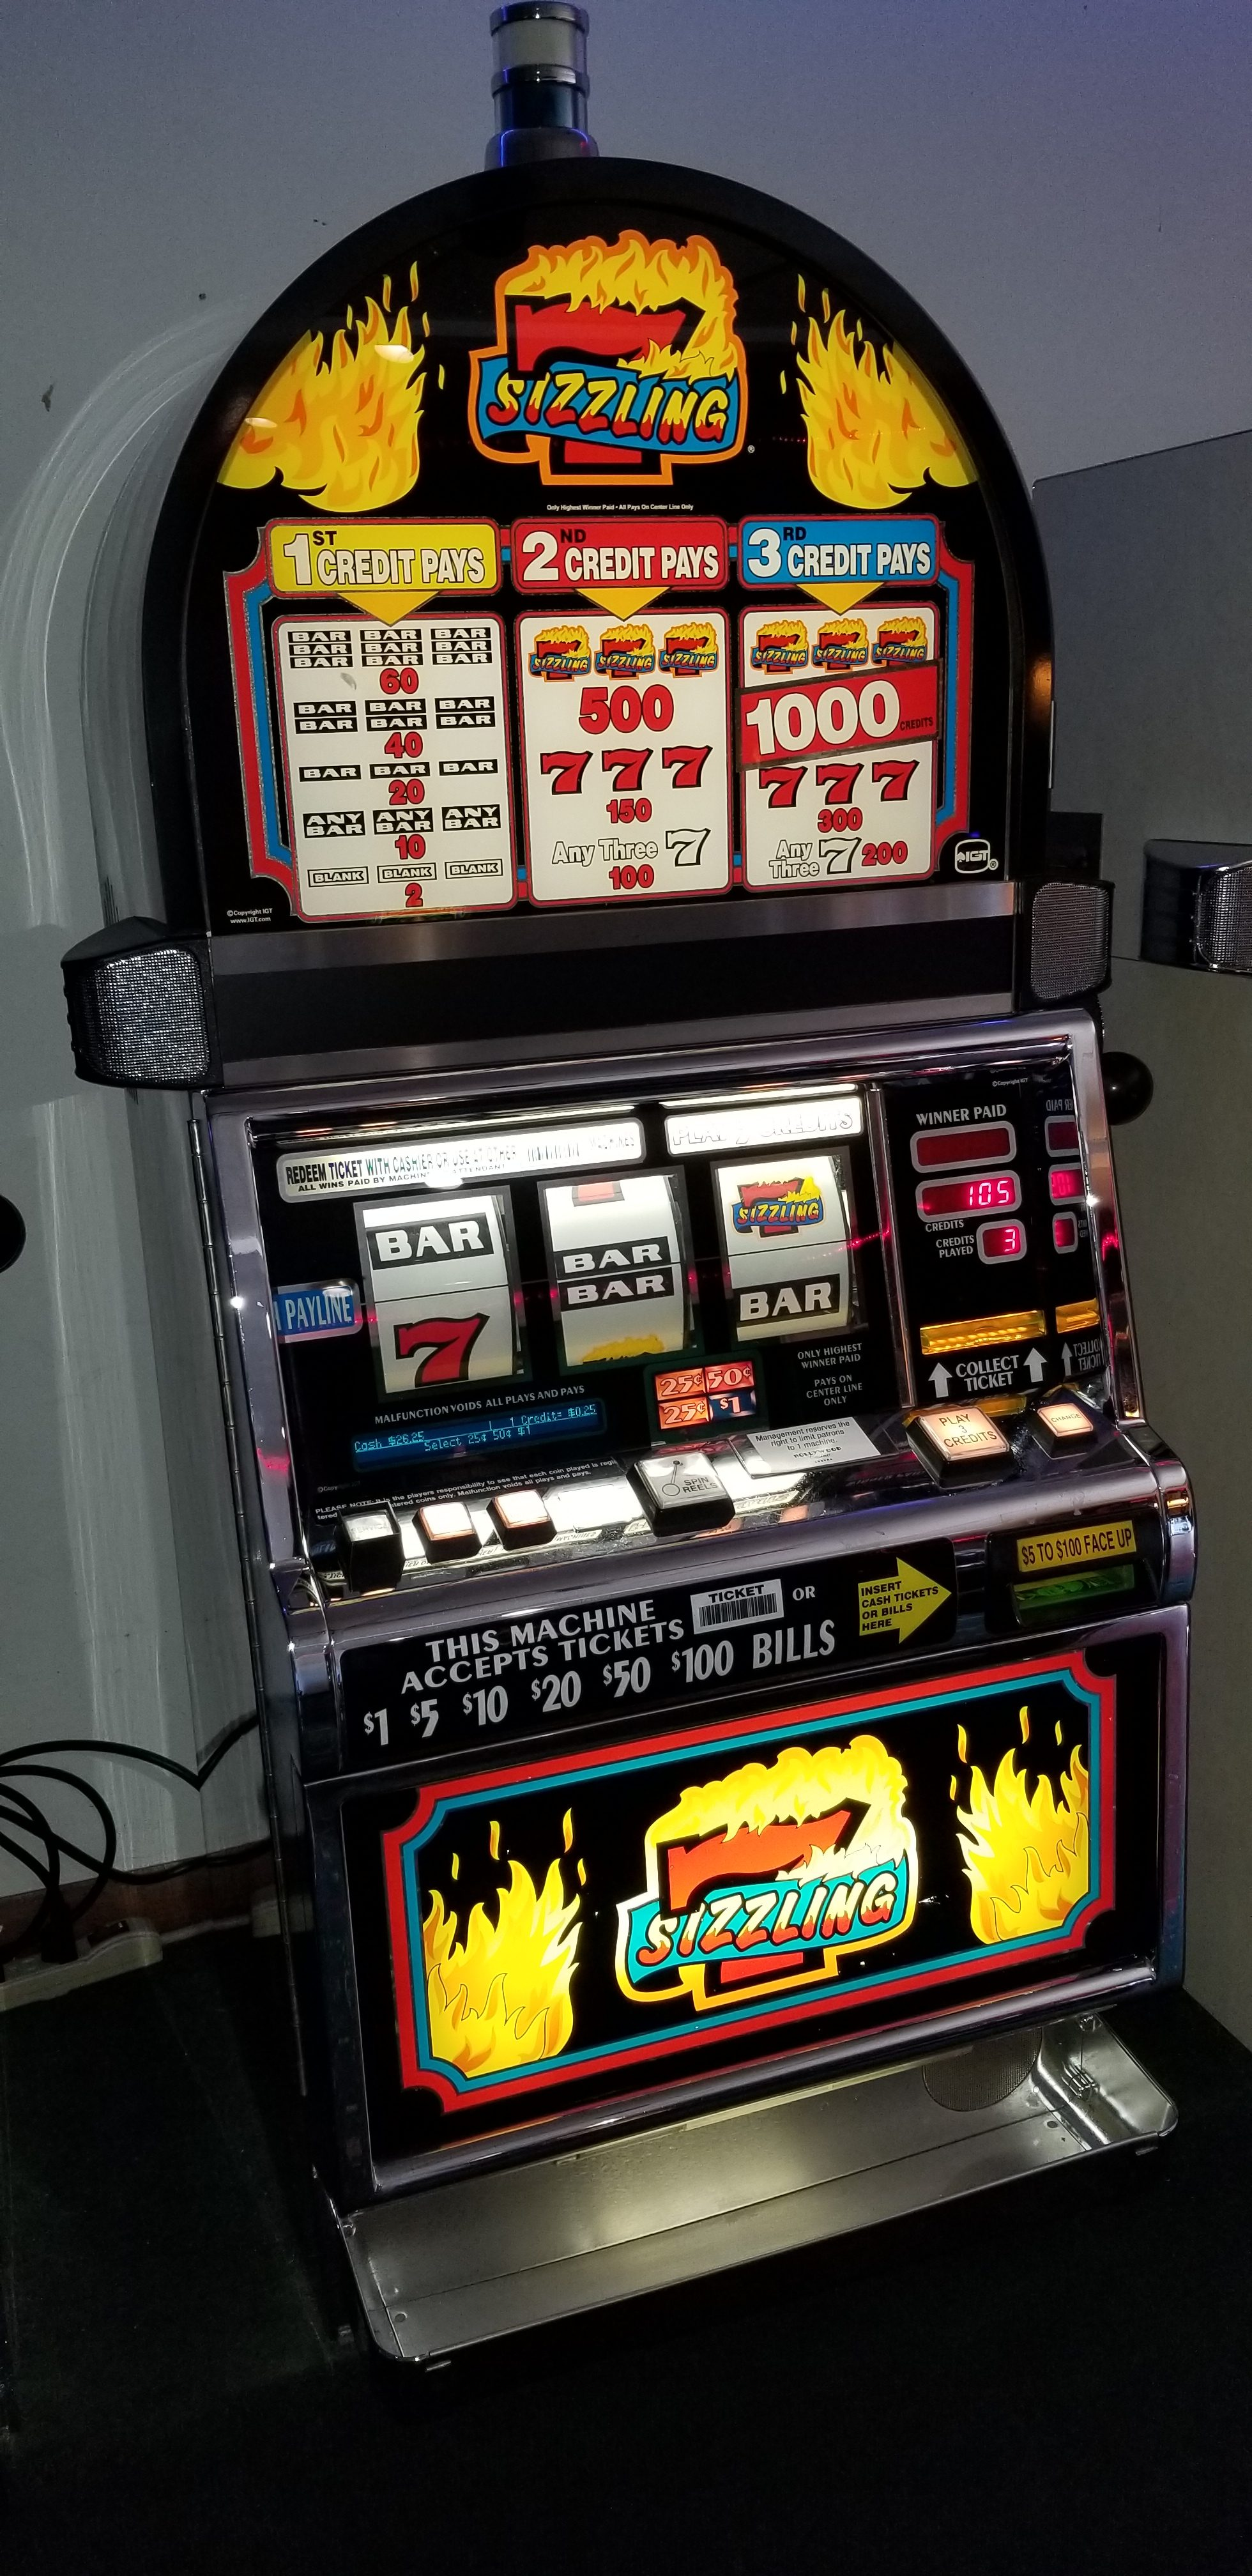 Igt S2000 Sizzling 7 Slot Machine Slot Machines For Sale